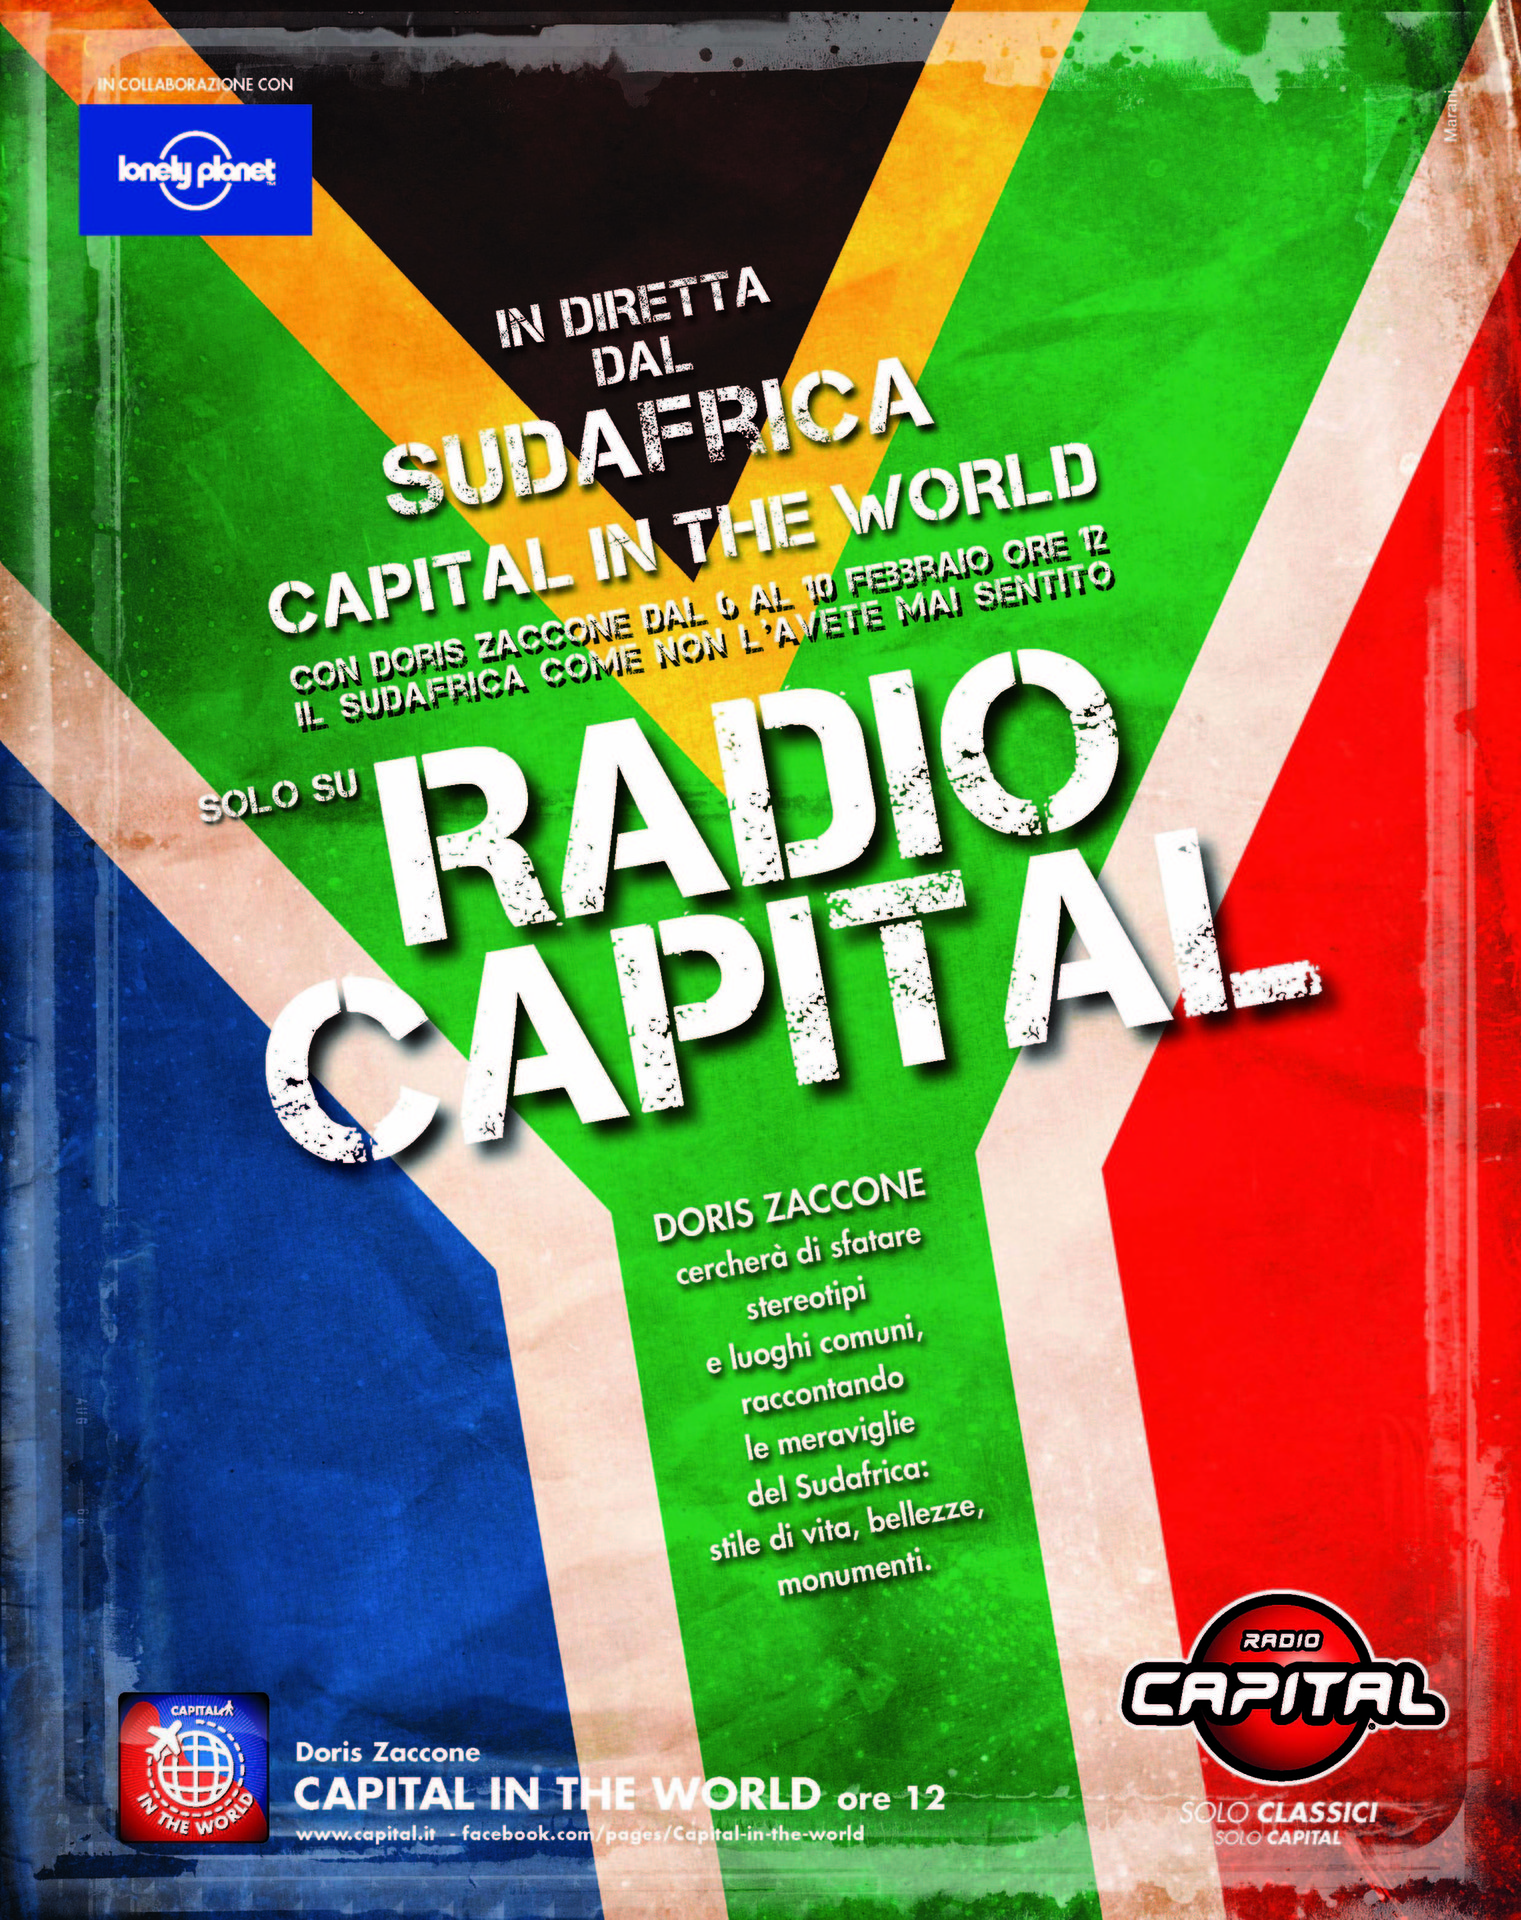 Capital+in+the+world+dalsudafrica